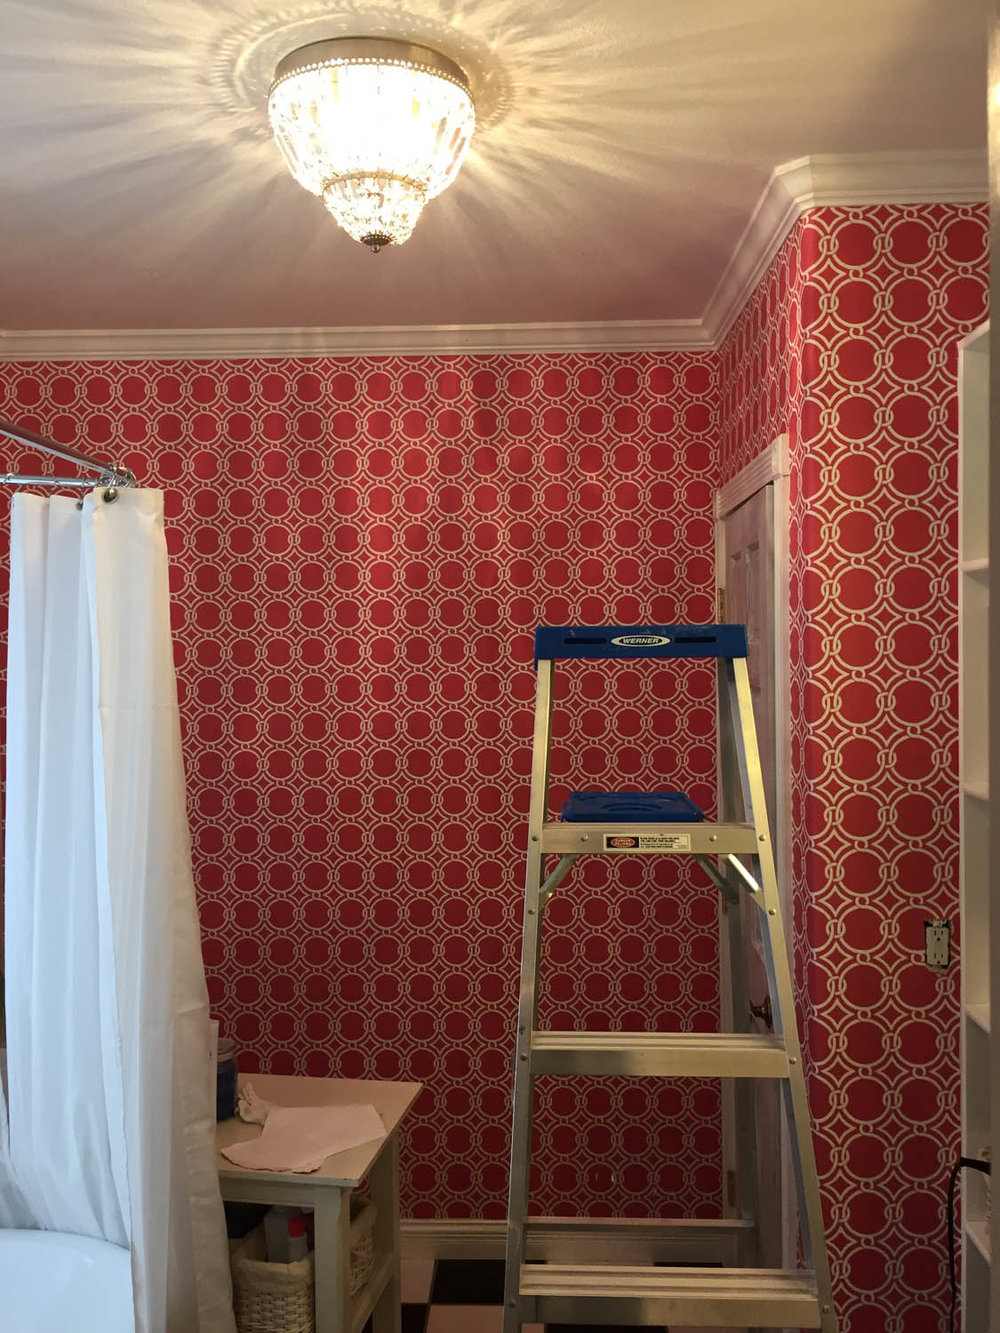 Finished pink wallpaper in master bathroom with new light fixture